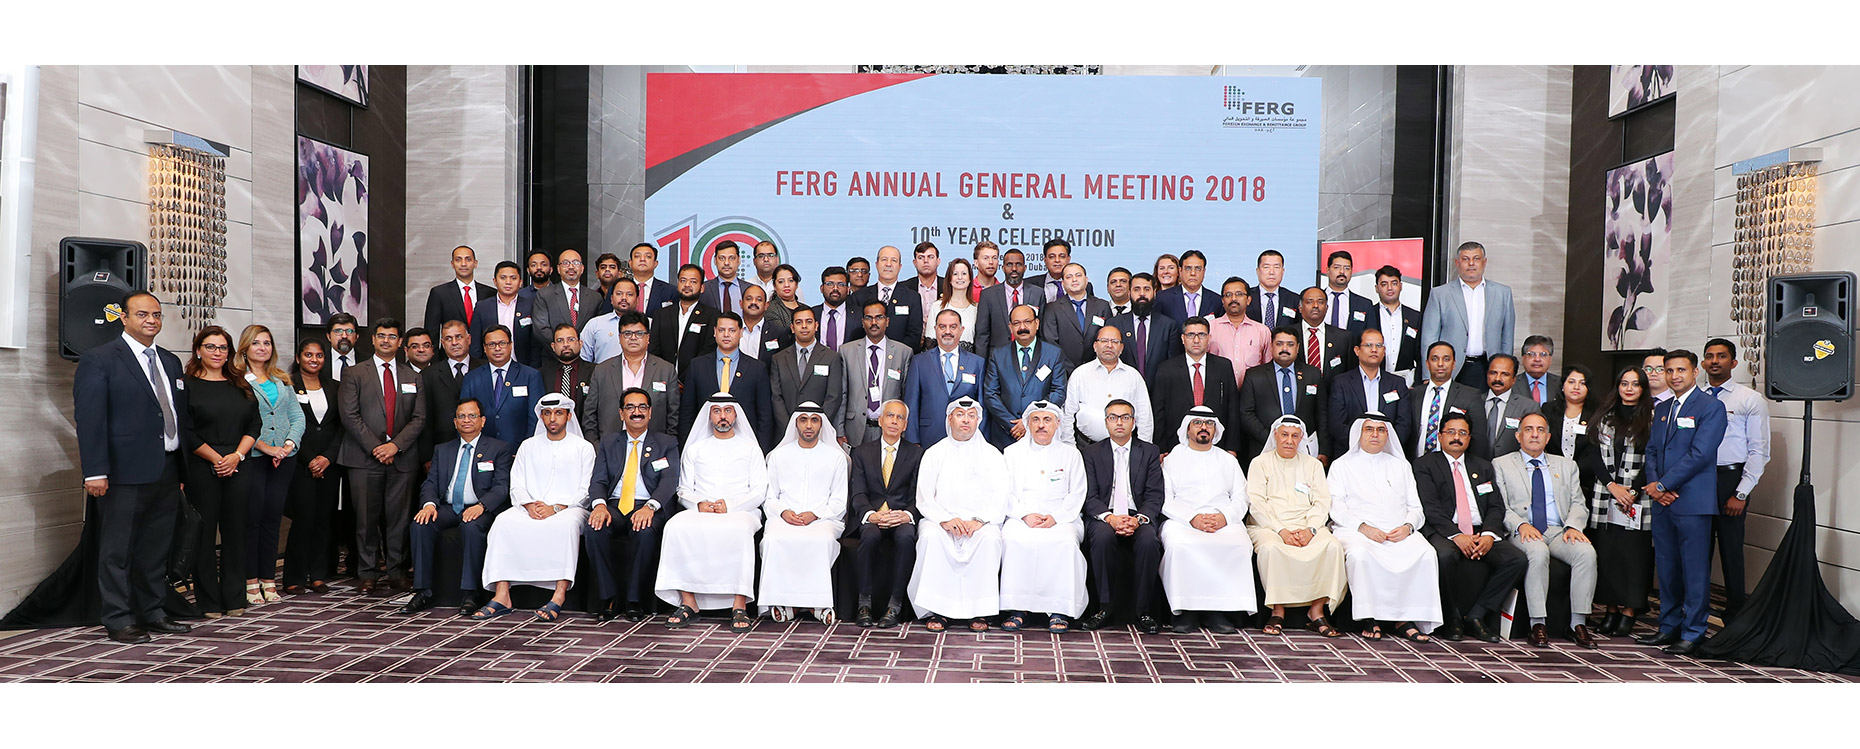 FERG ANNUAL GENERAL MEETING'18